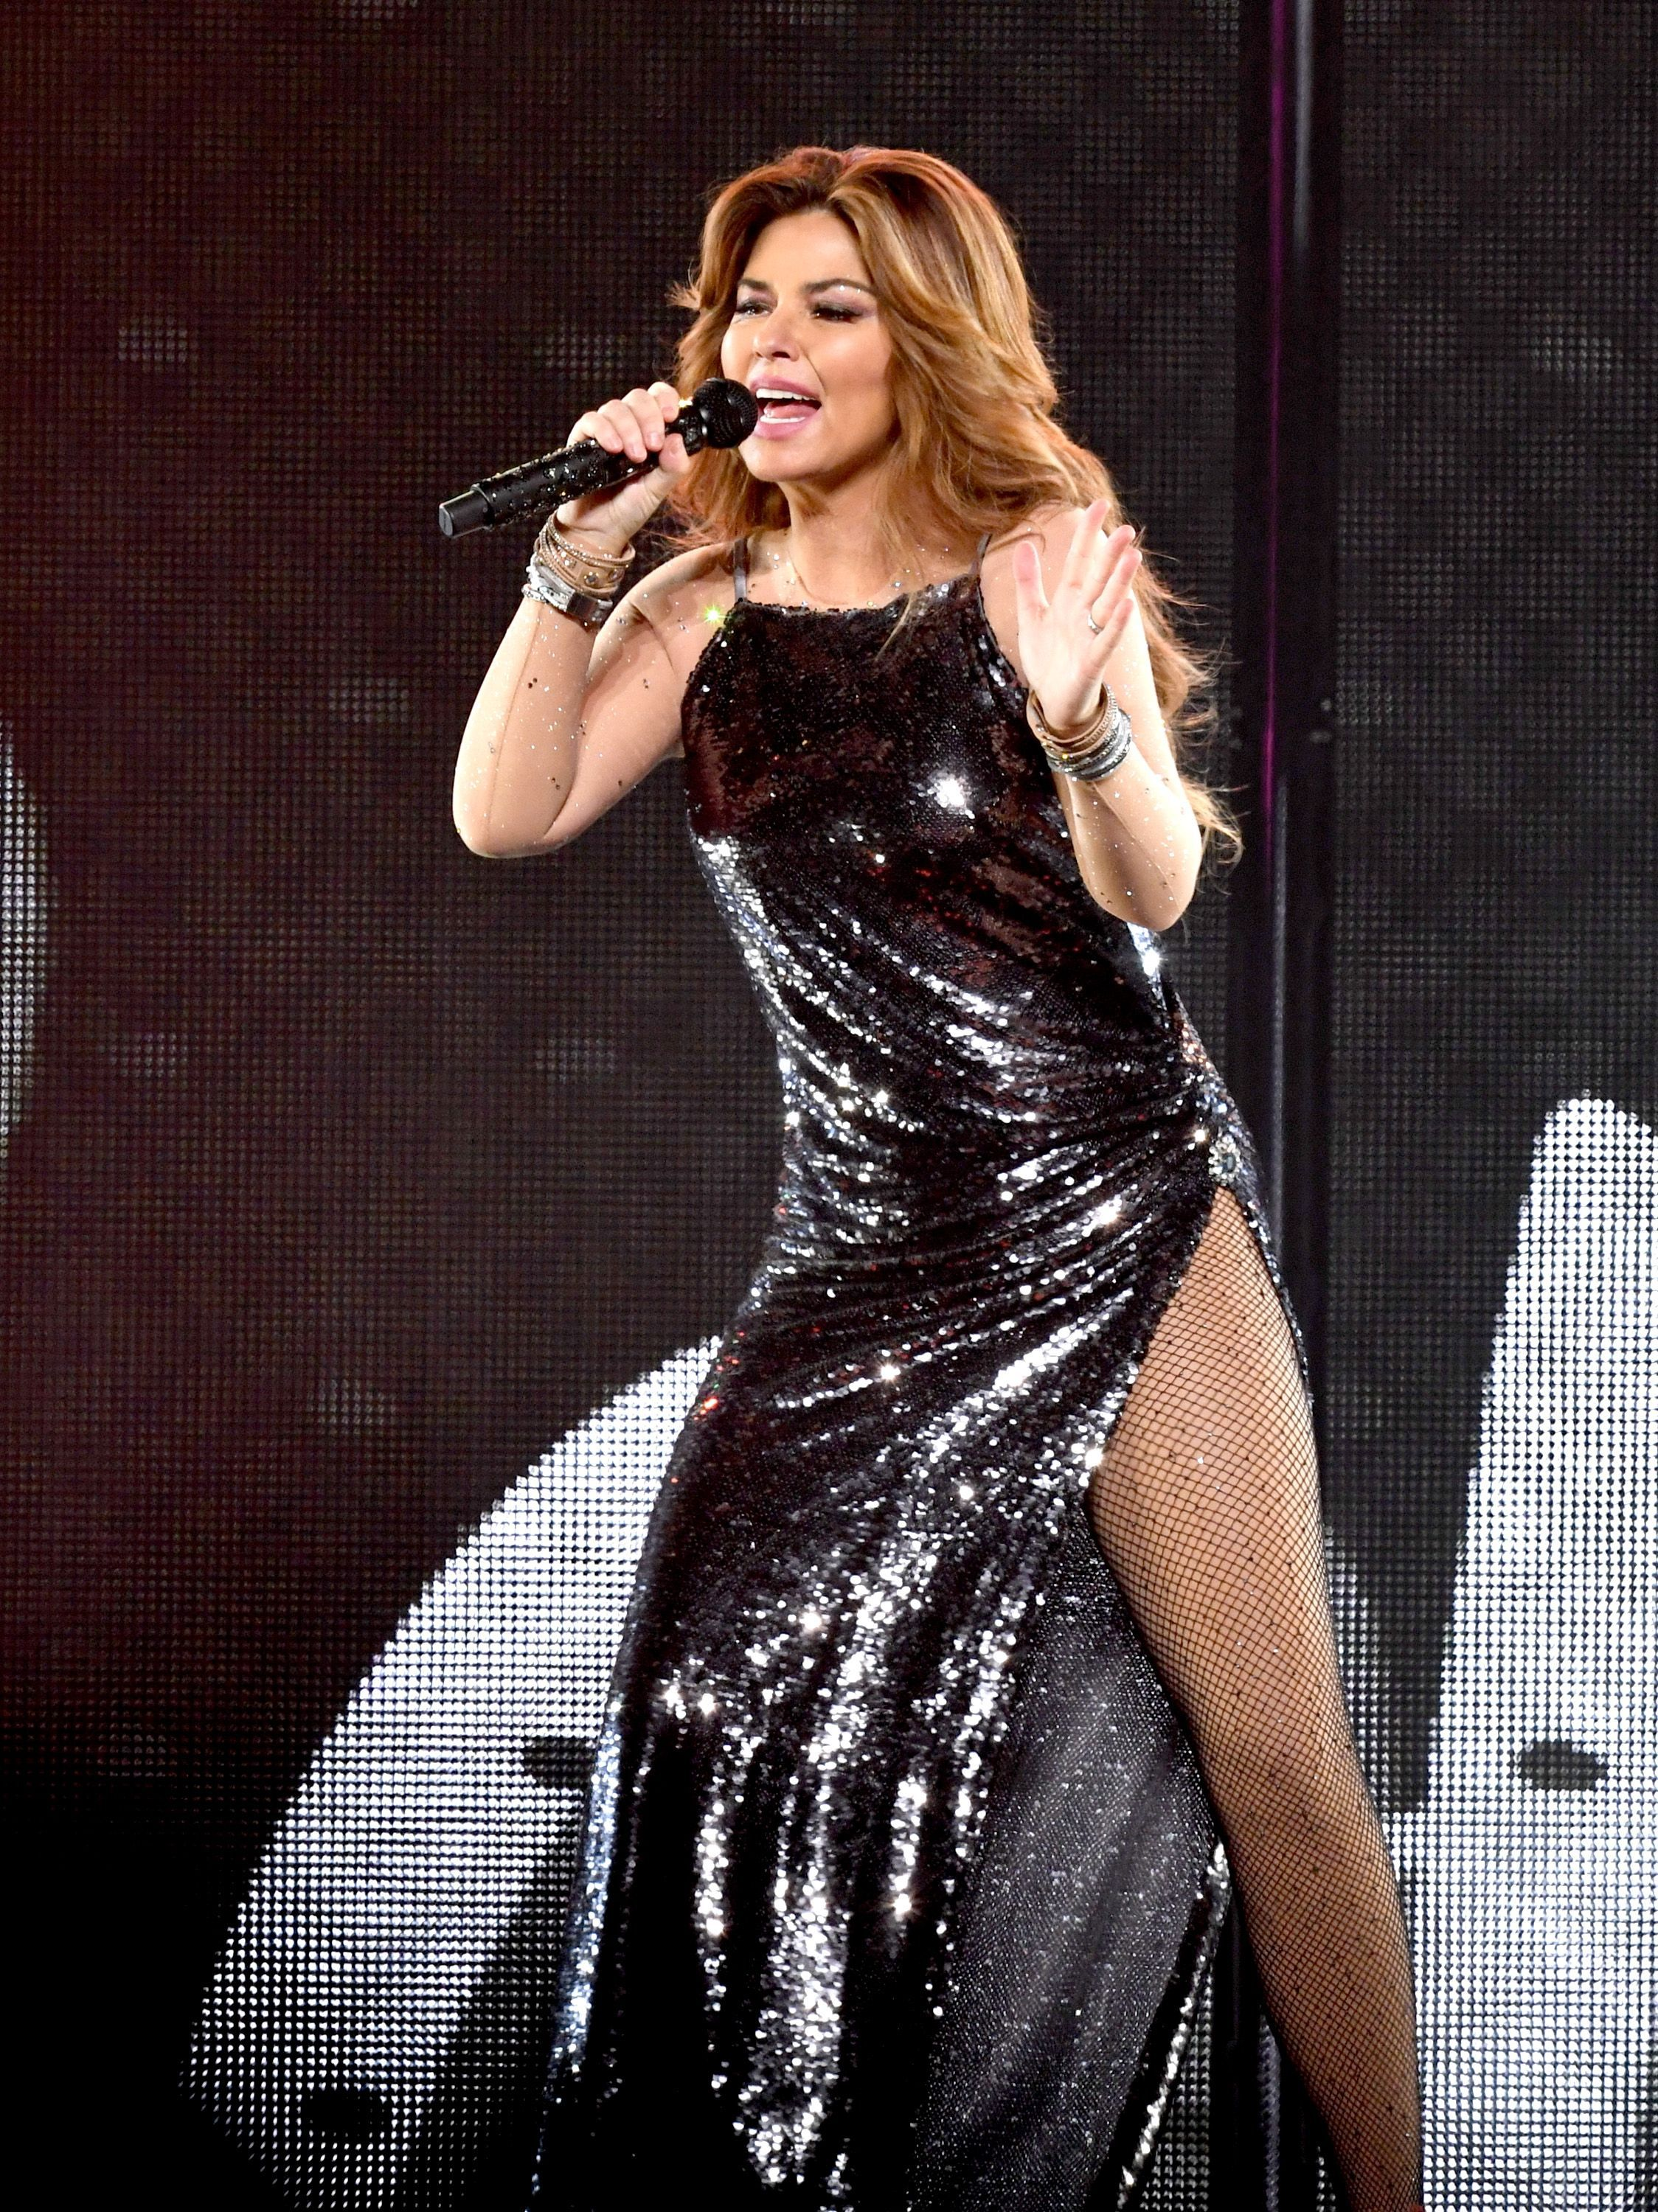 Country star Shania Twain is rocking it out on stage in a